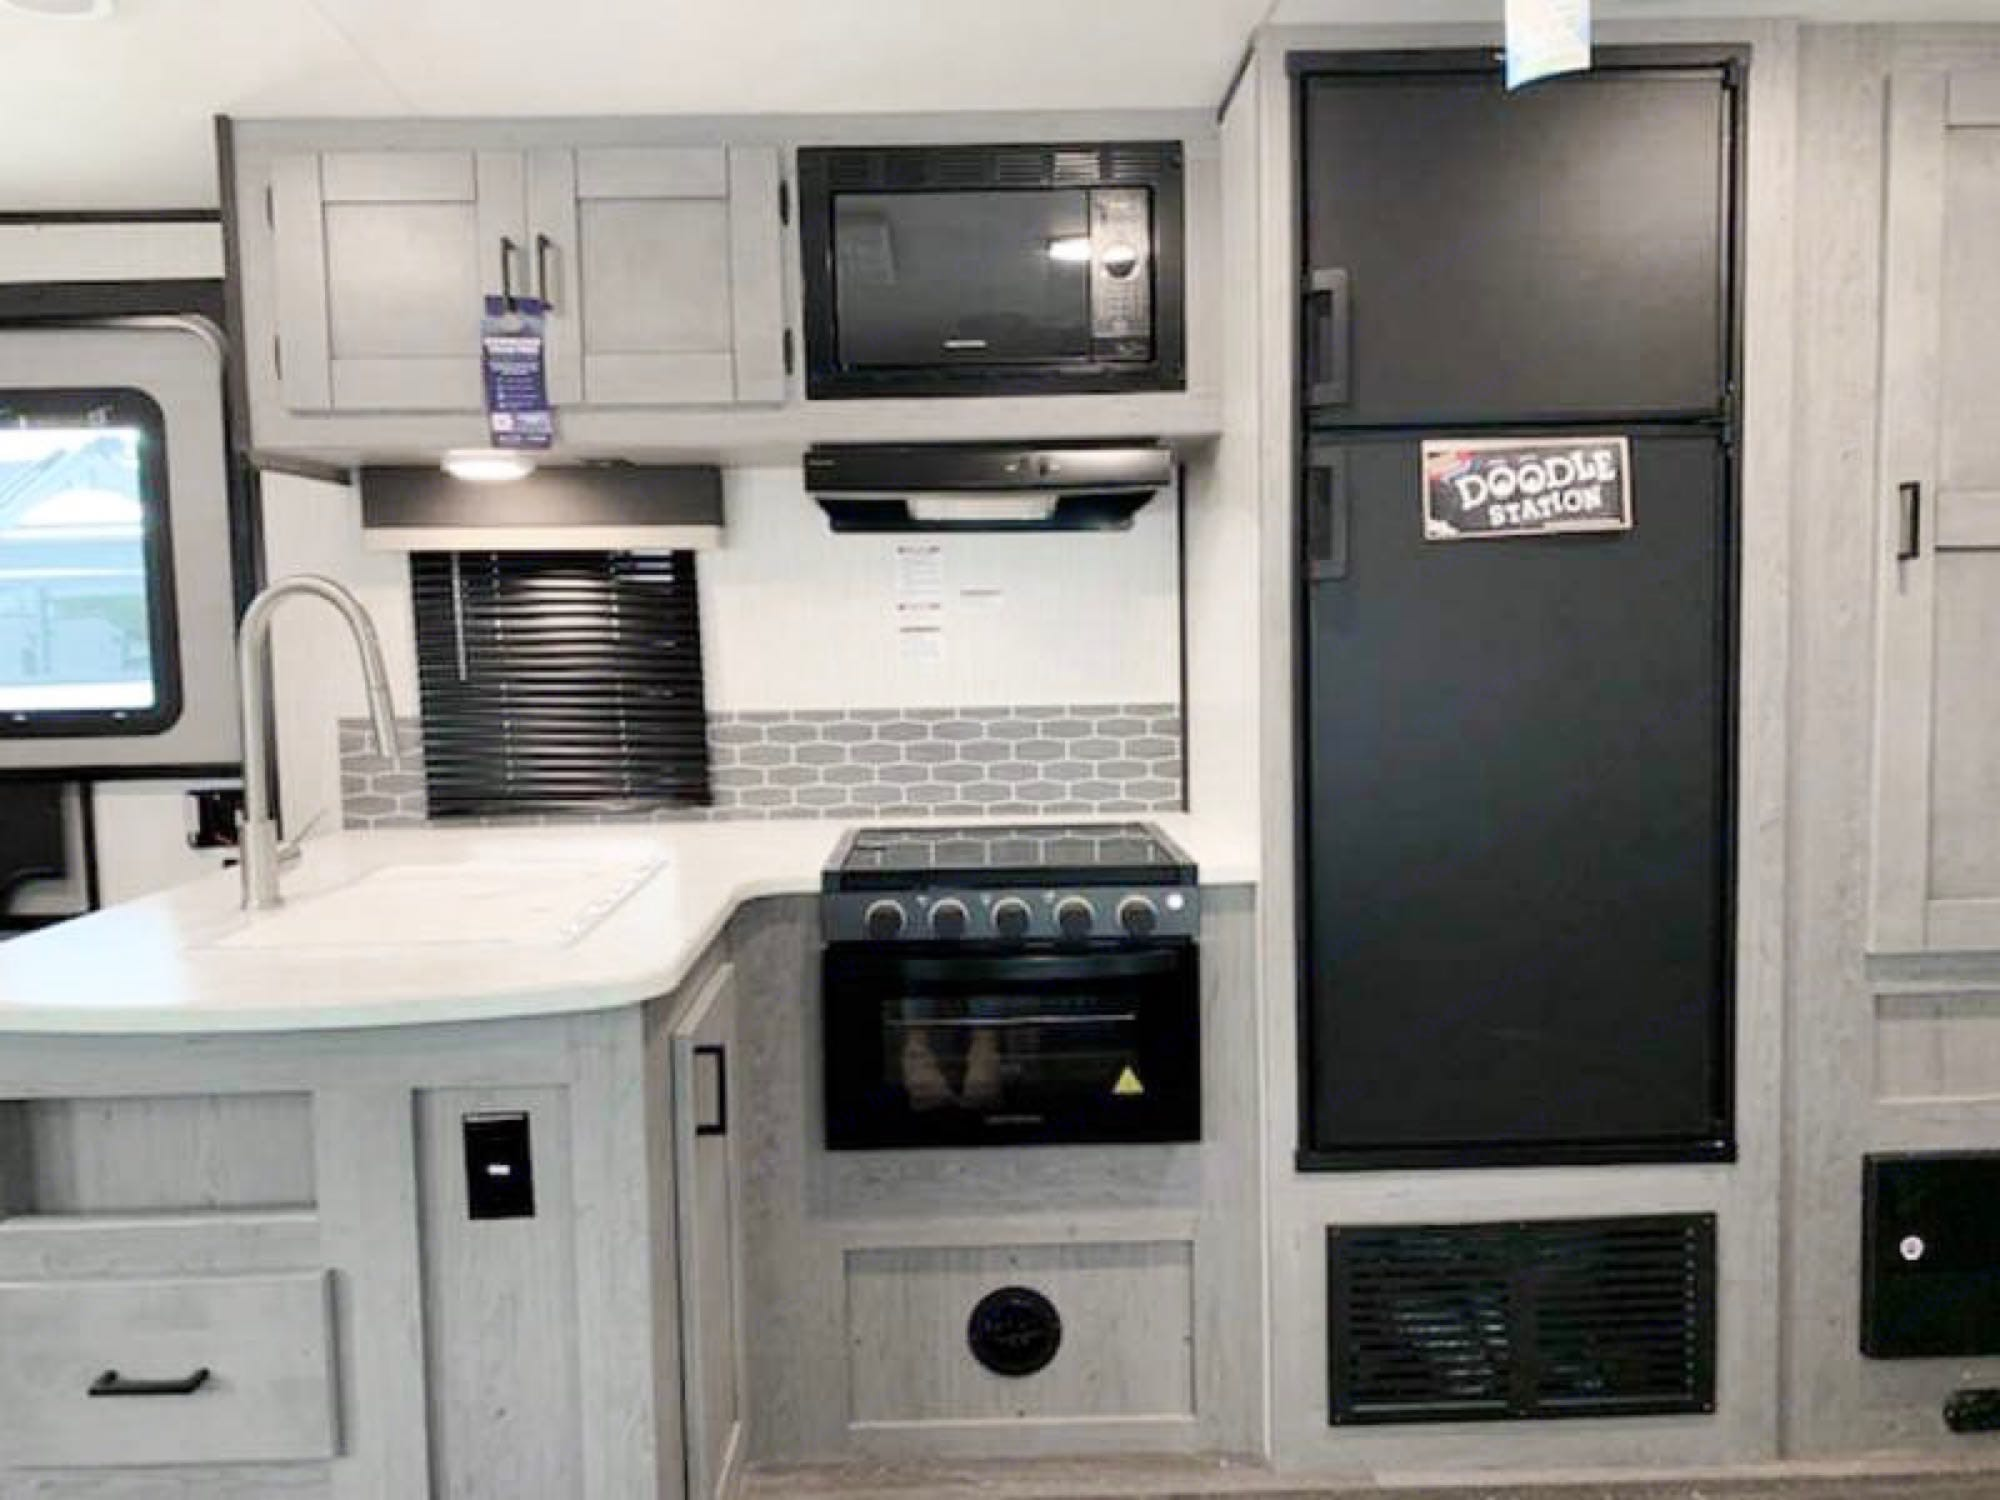 Feel right at home with a refrigerator/freezer, microwave and stove/oven! Sink has a pullout faucet. Heartland Other 2021